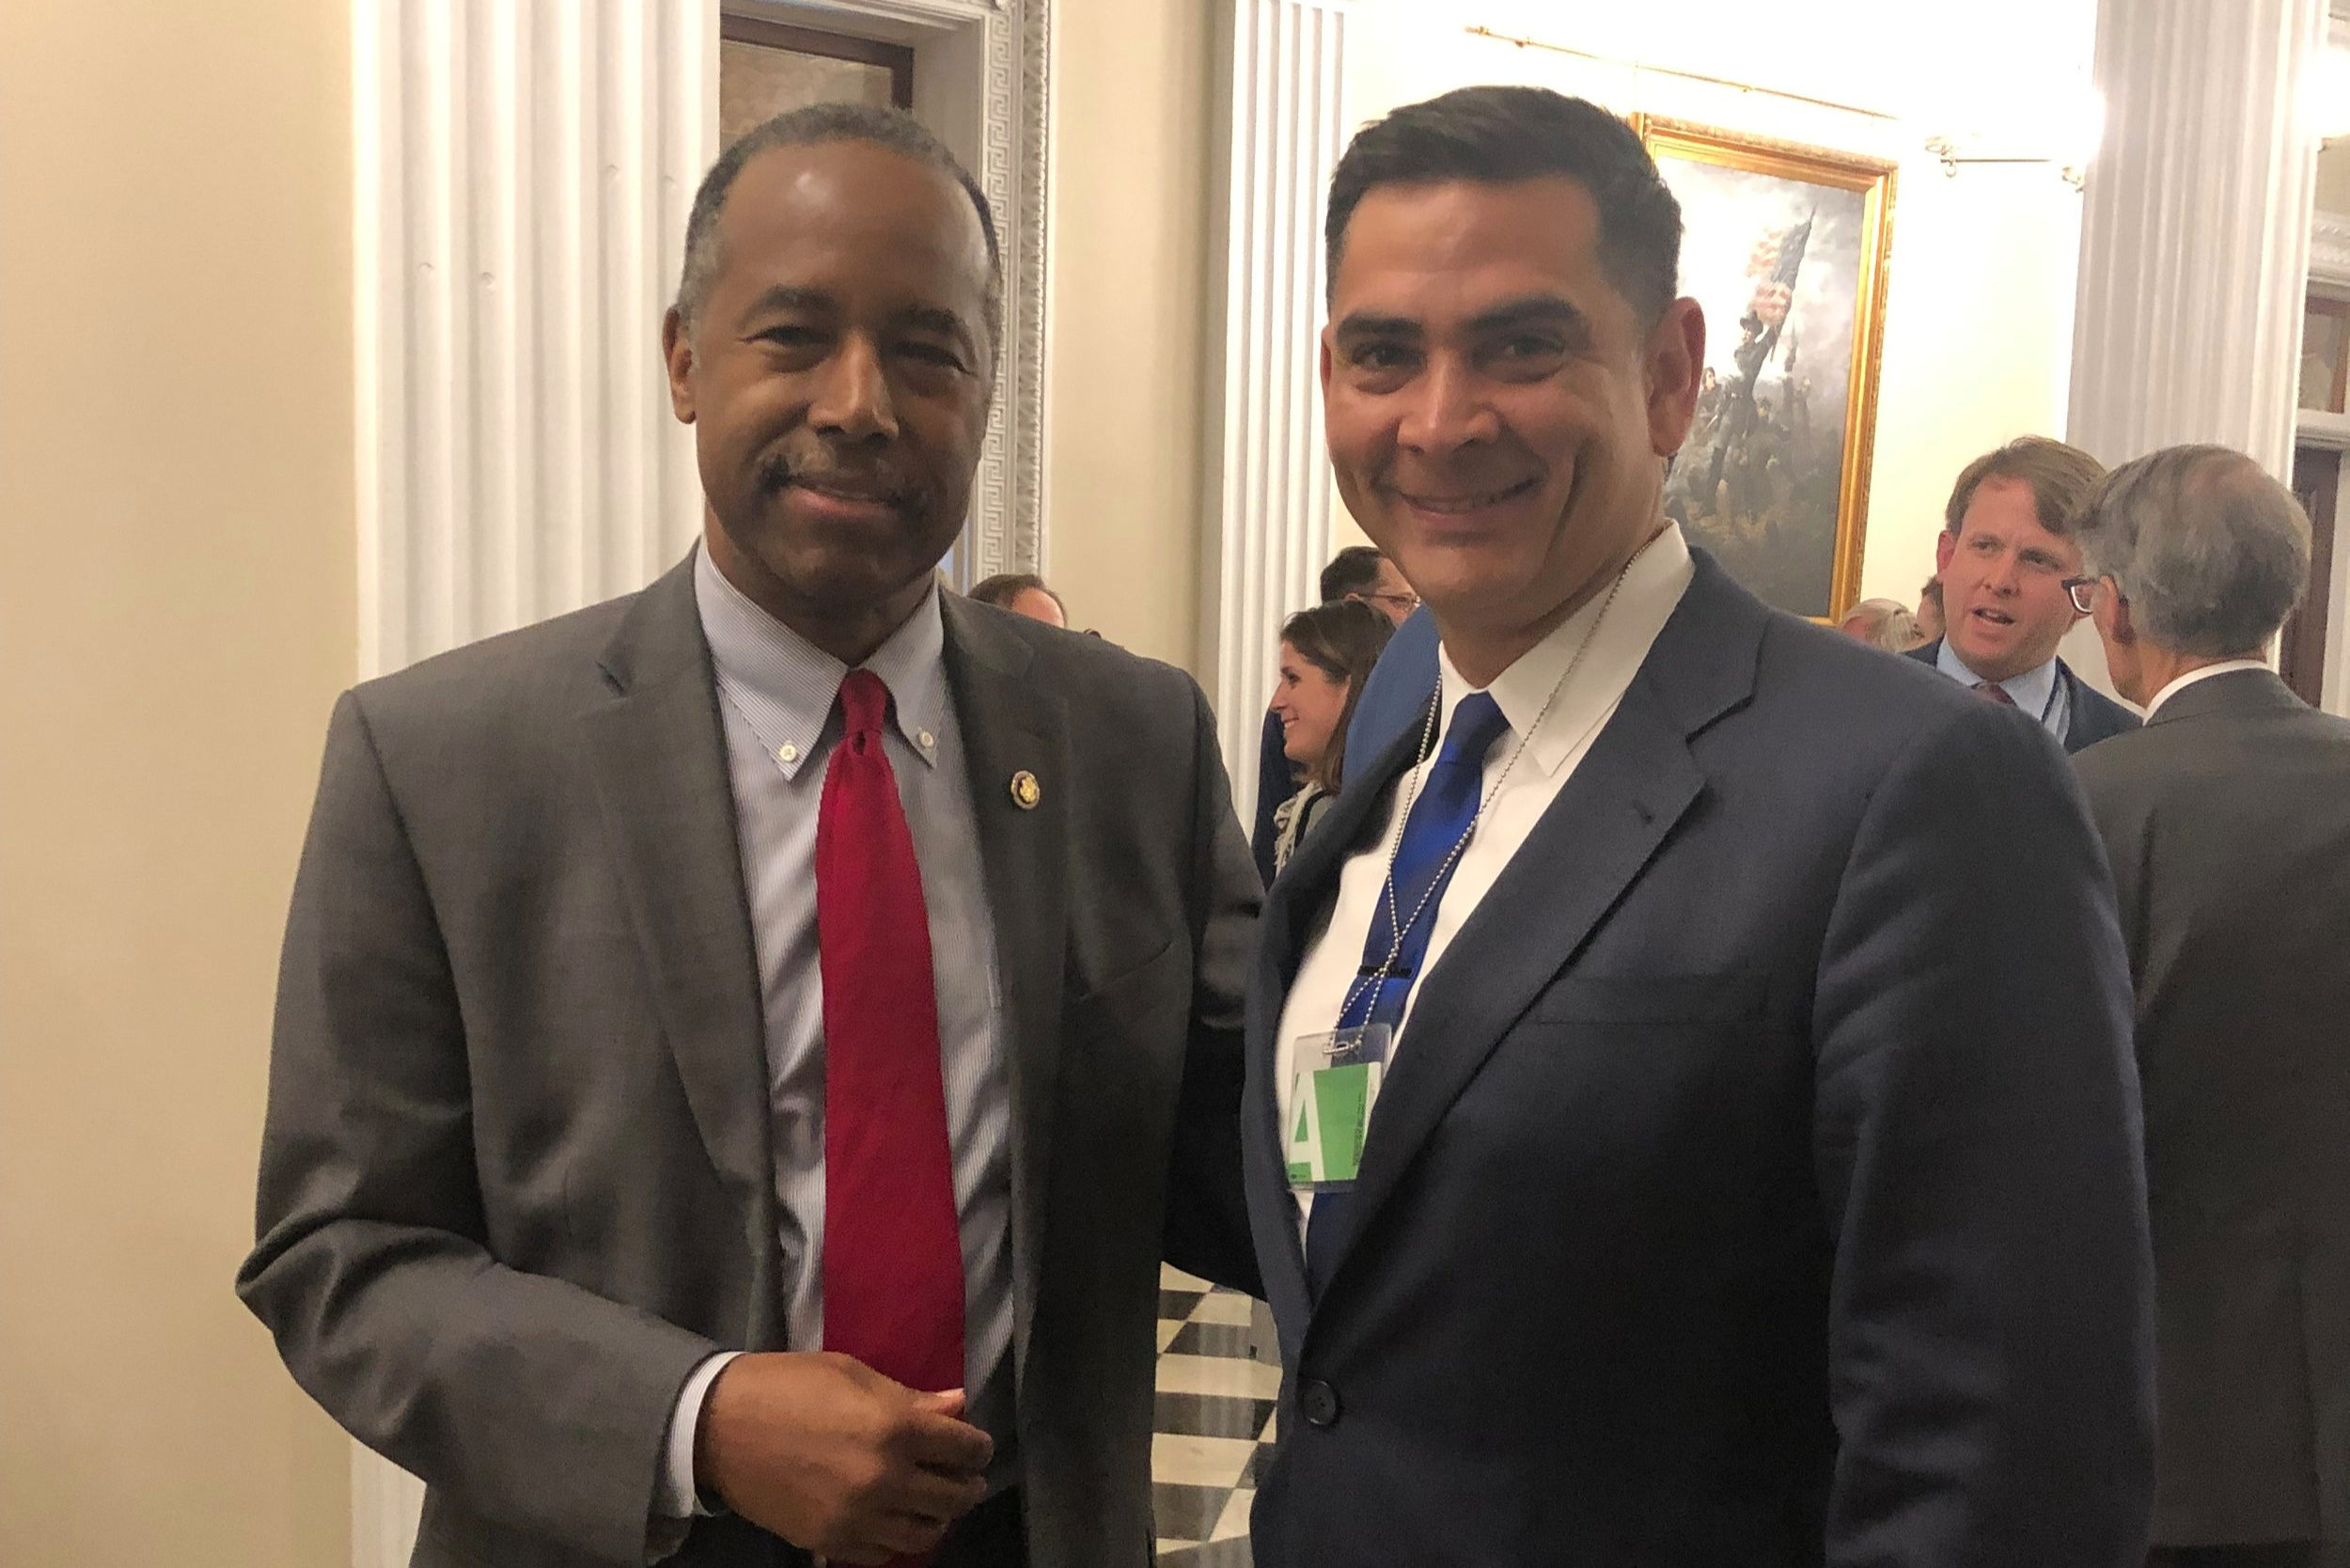 Alex Bhathal and United States Secretary of Housing and Urban Development, Ben Carson.